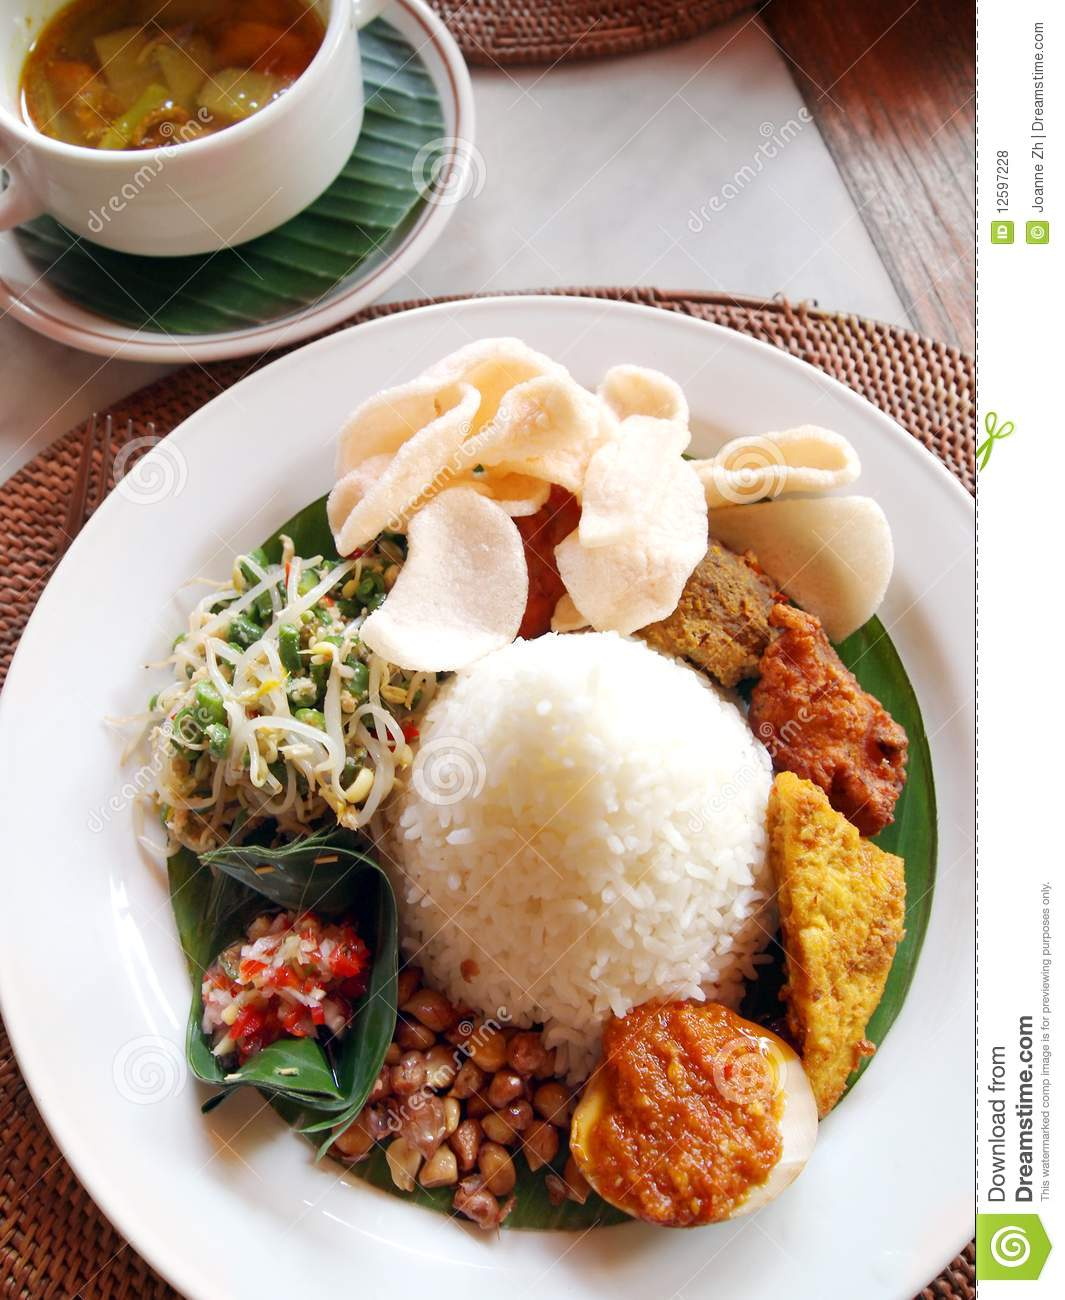 Cuisine Bali Indonesian Bali Ethnic Cuisine Stock Photo Image Of Cultural